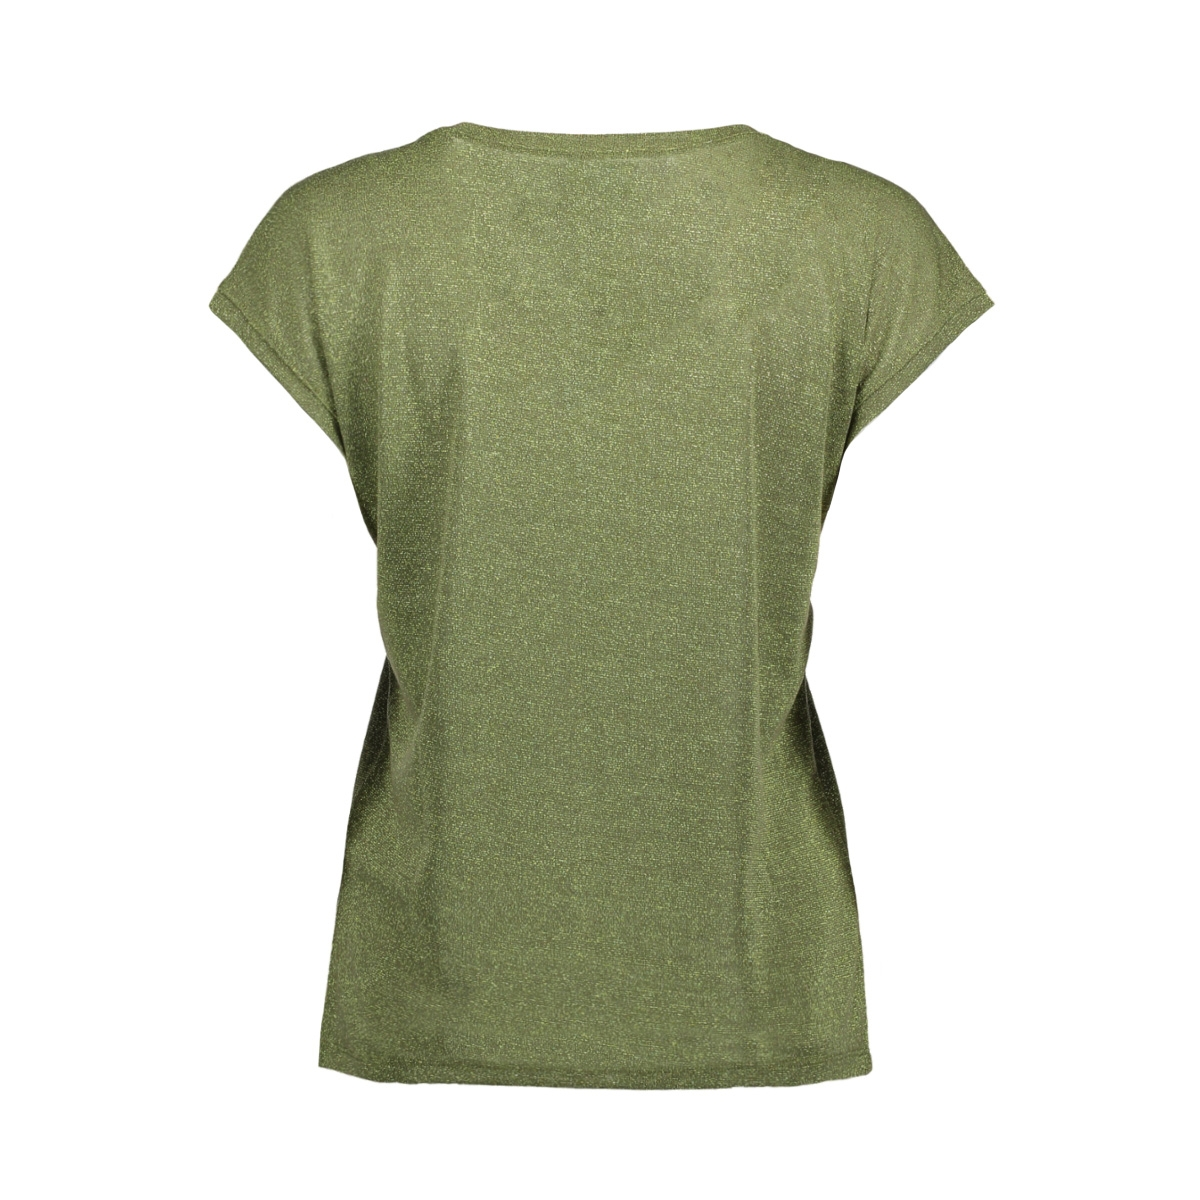 onlsilvery s/s v neck lurex top jrs noos 15136069 only t-shirt agave green